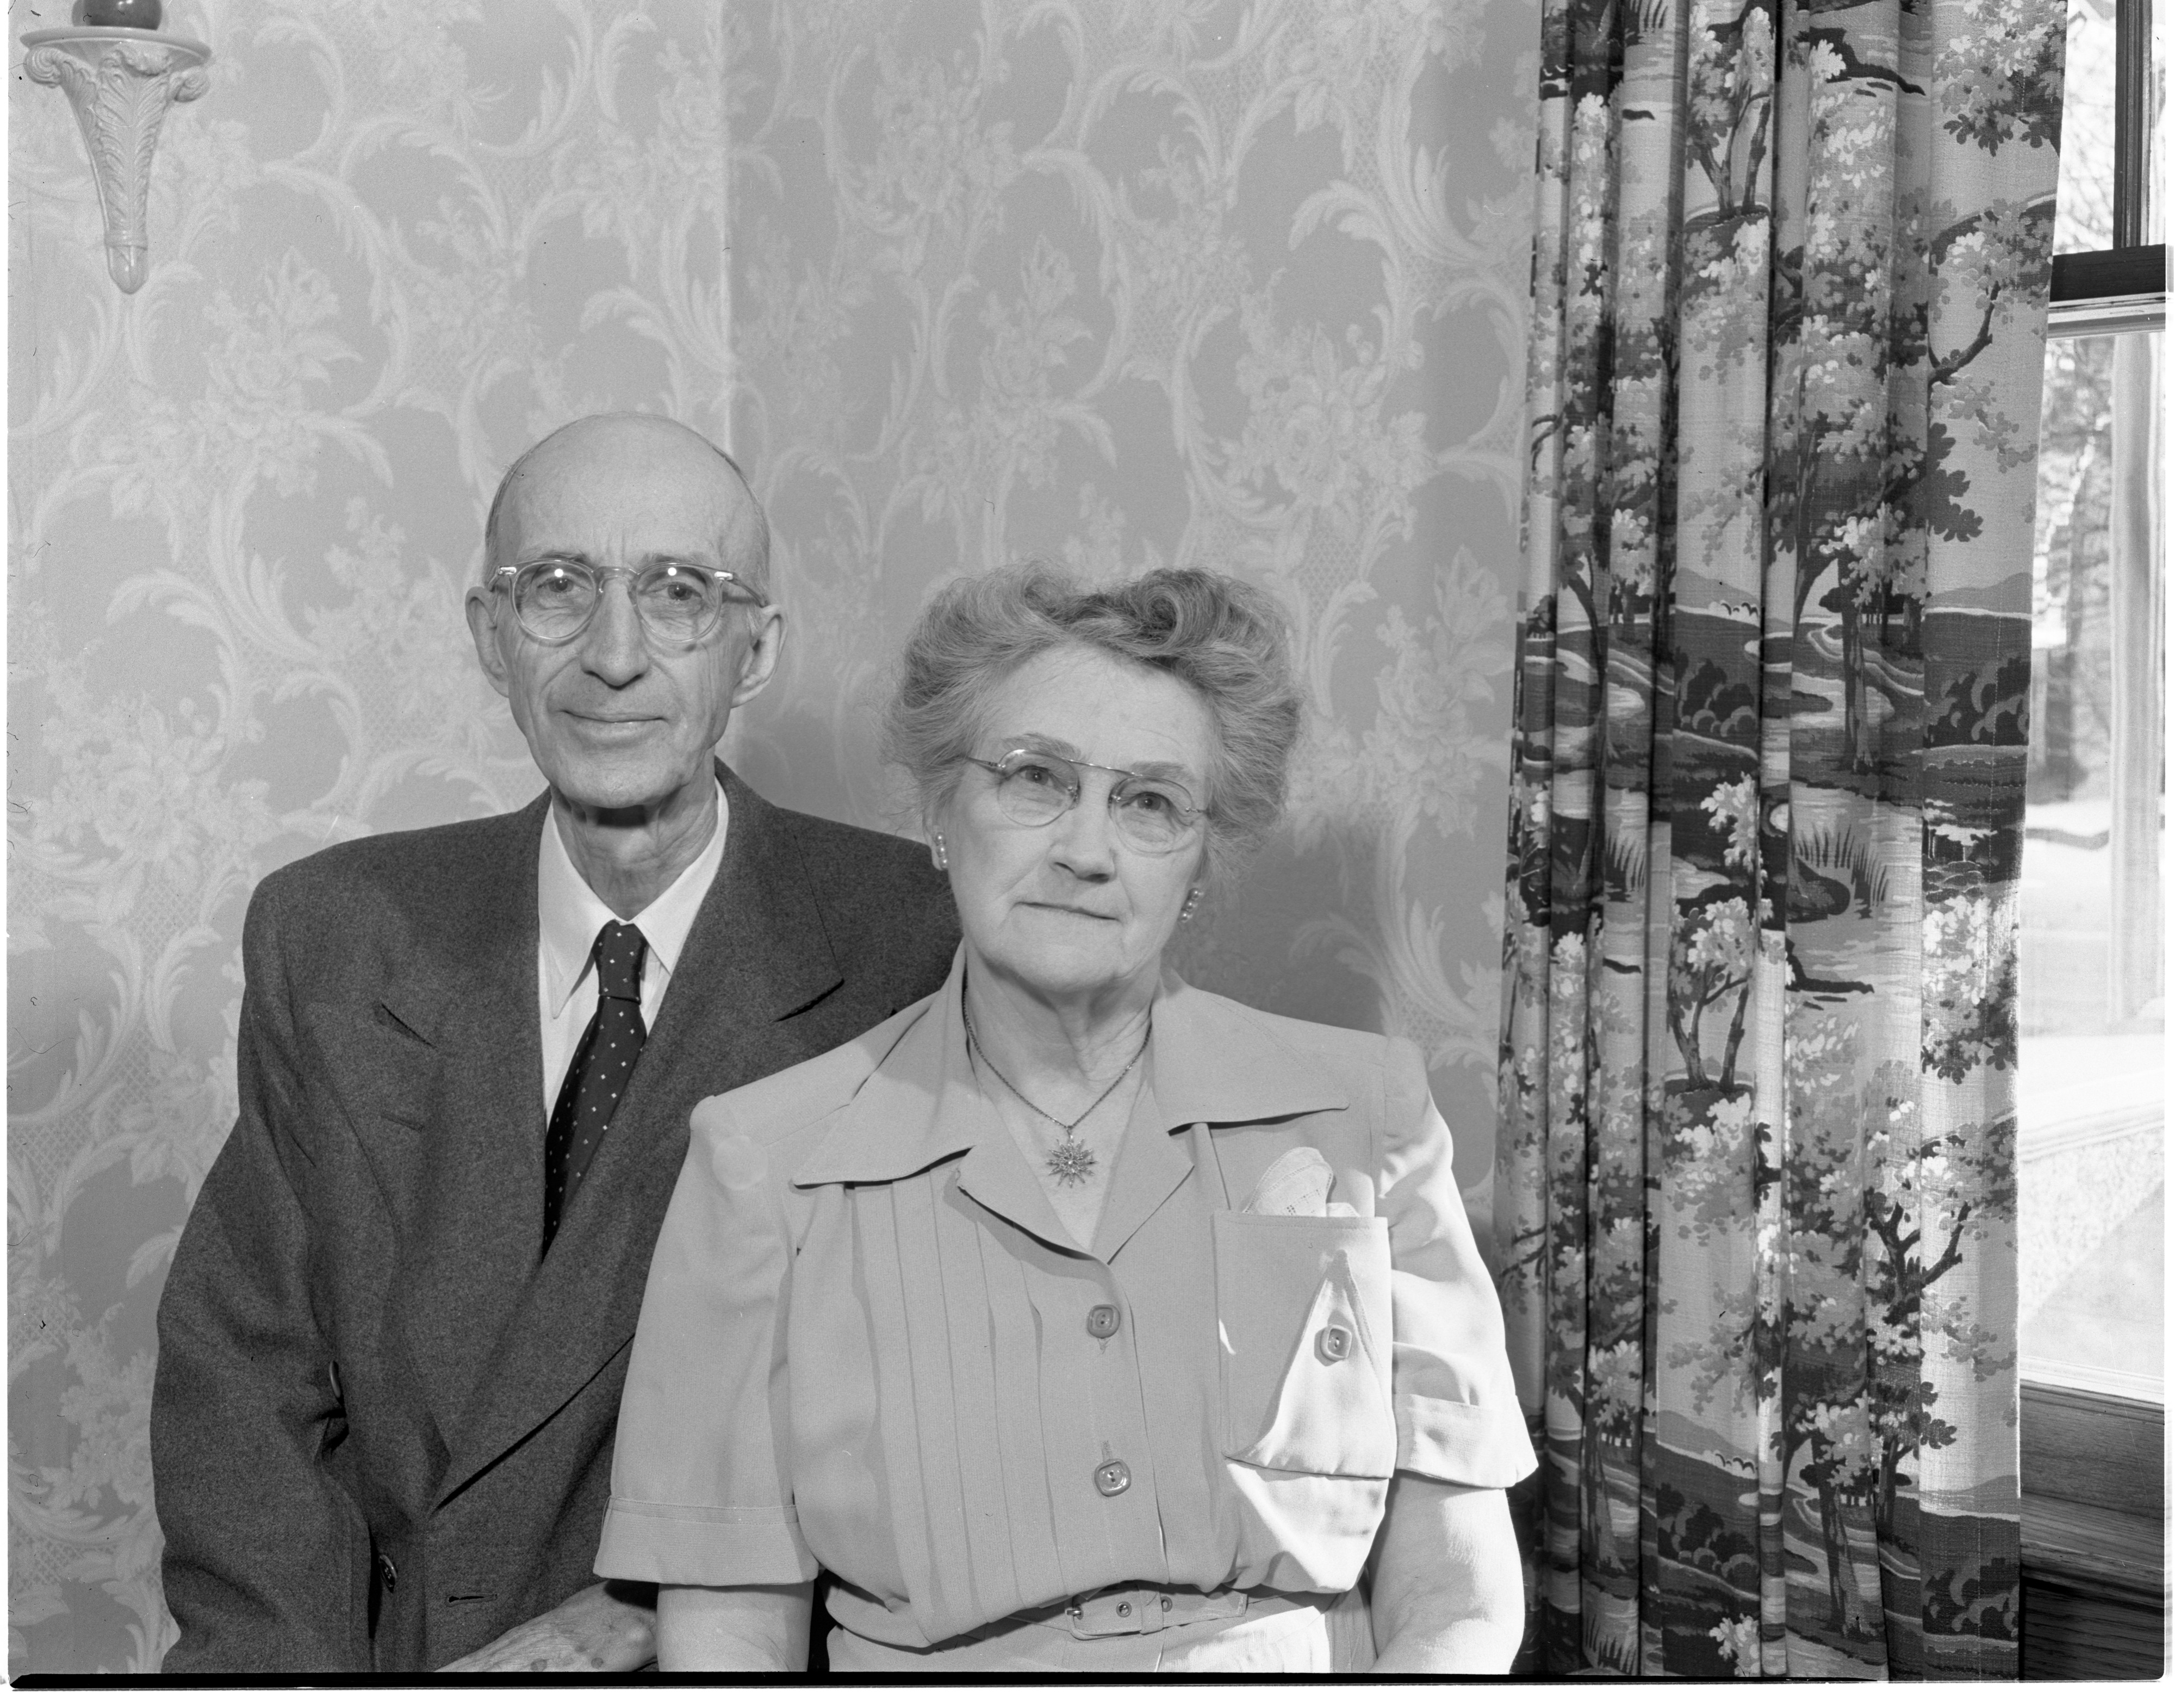 Eben & Mary Whipple - Married 50 Years, December 1950 image